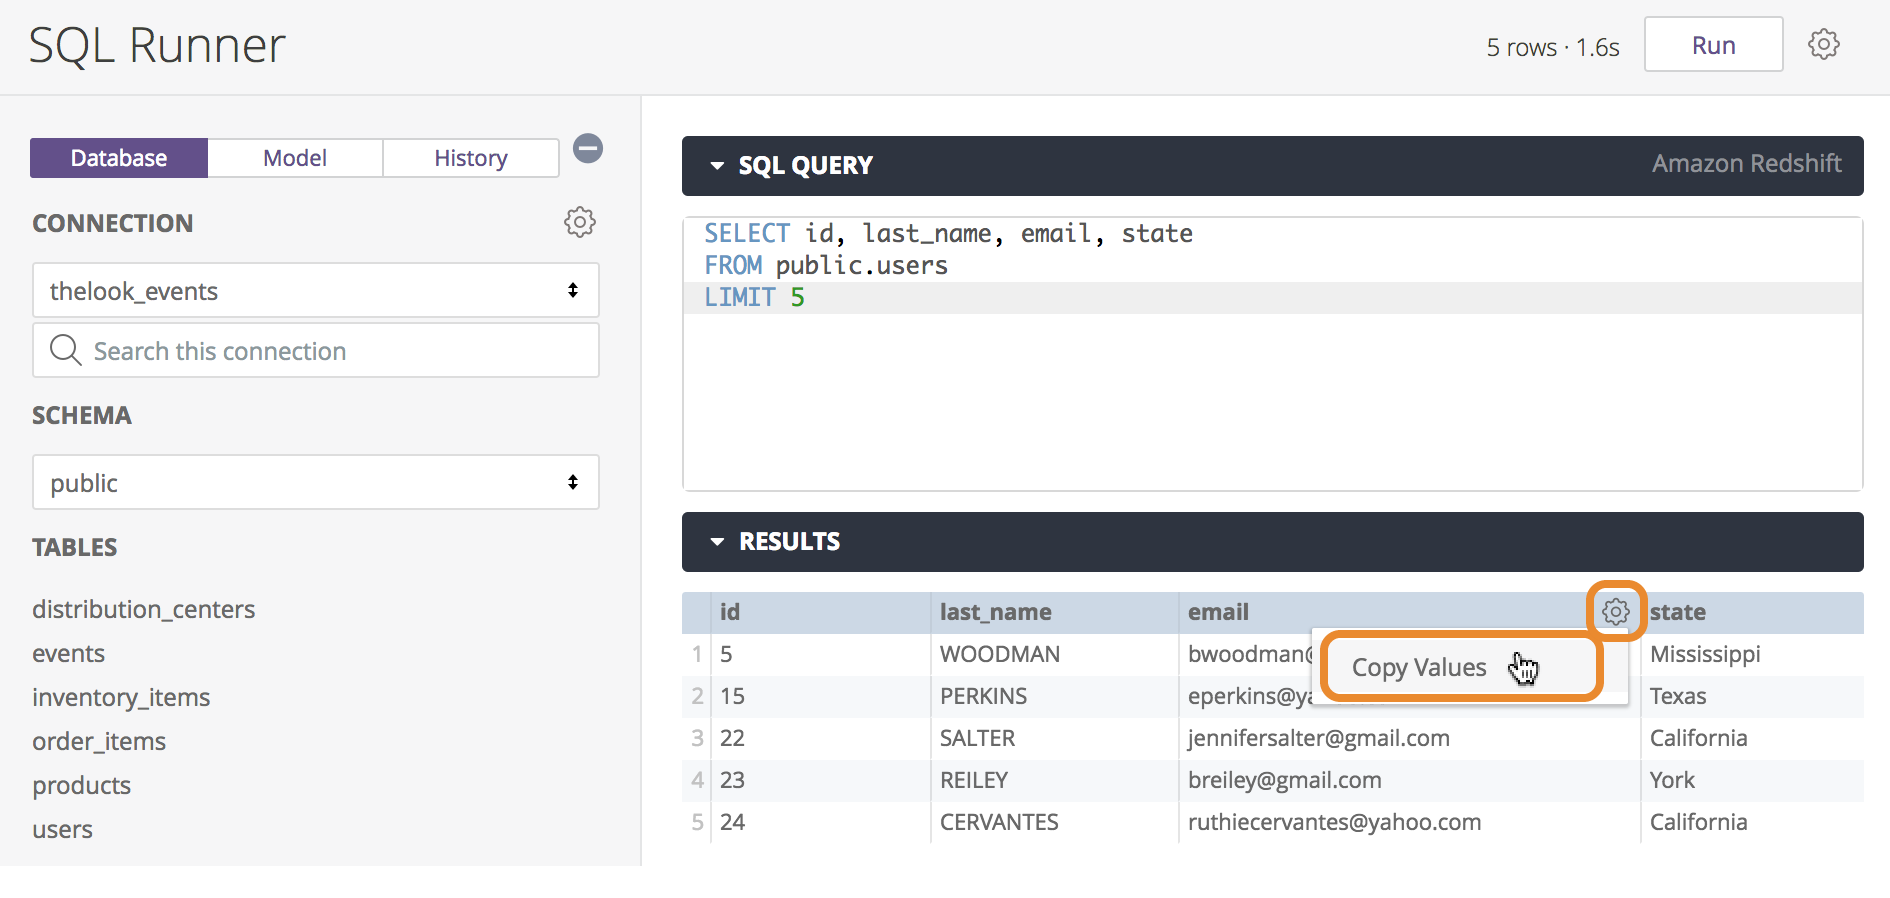 Using SQL Runner to Create Queries and Explores